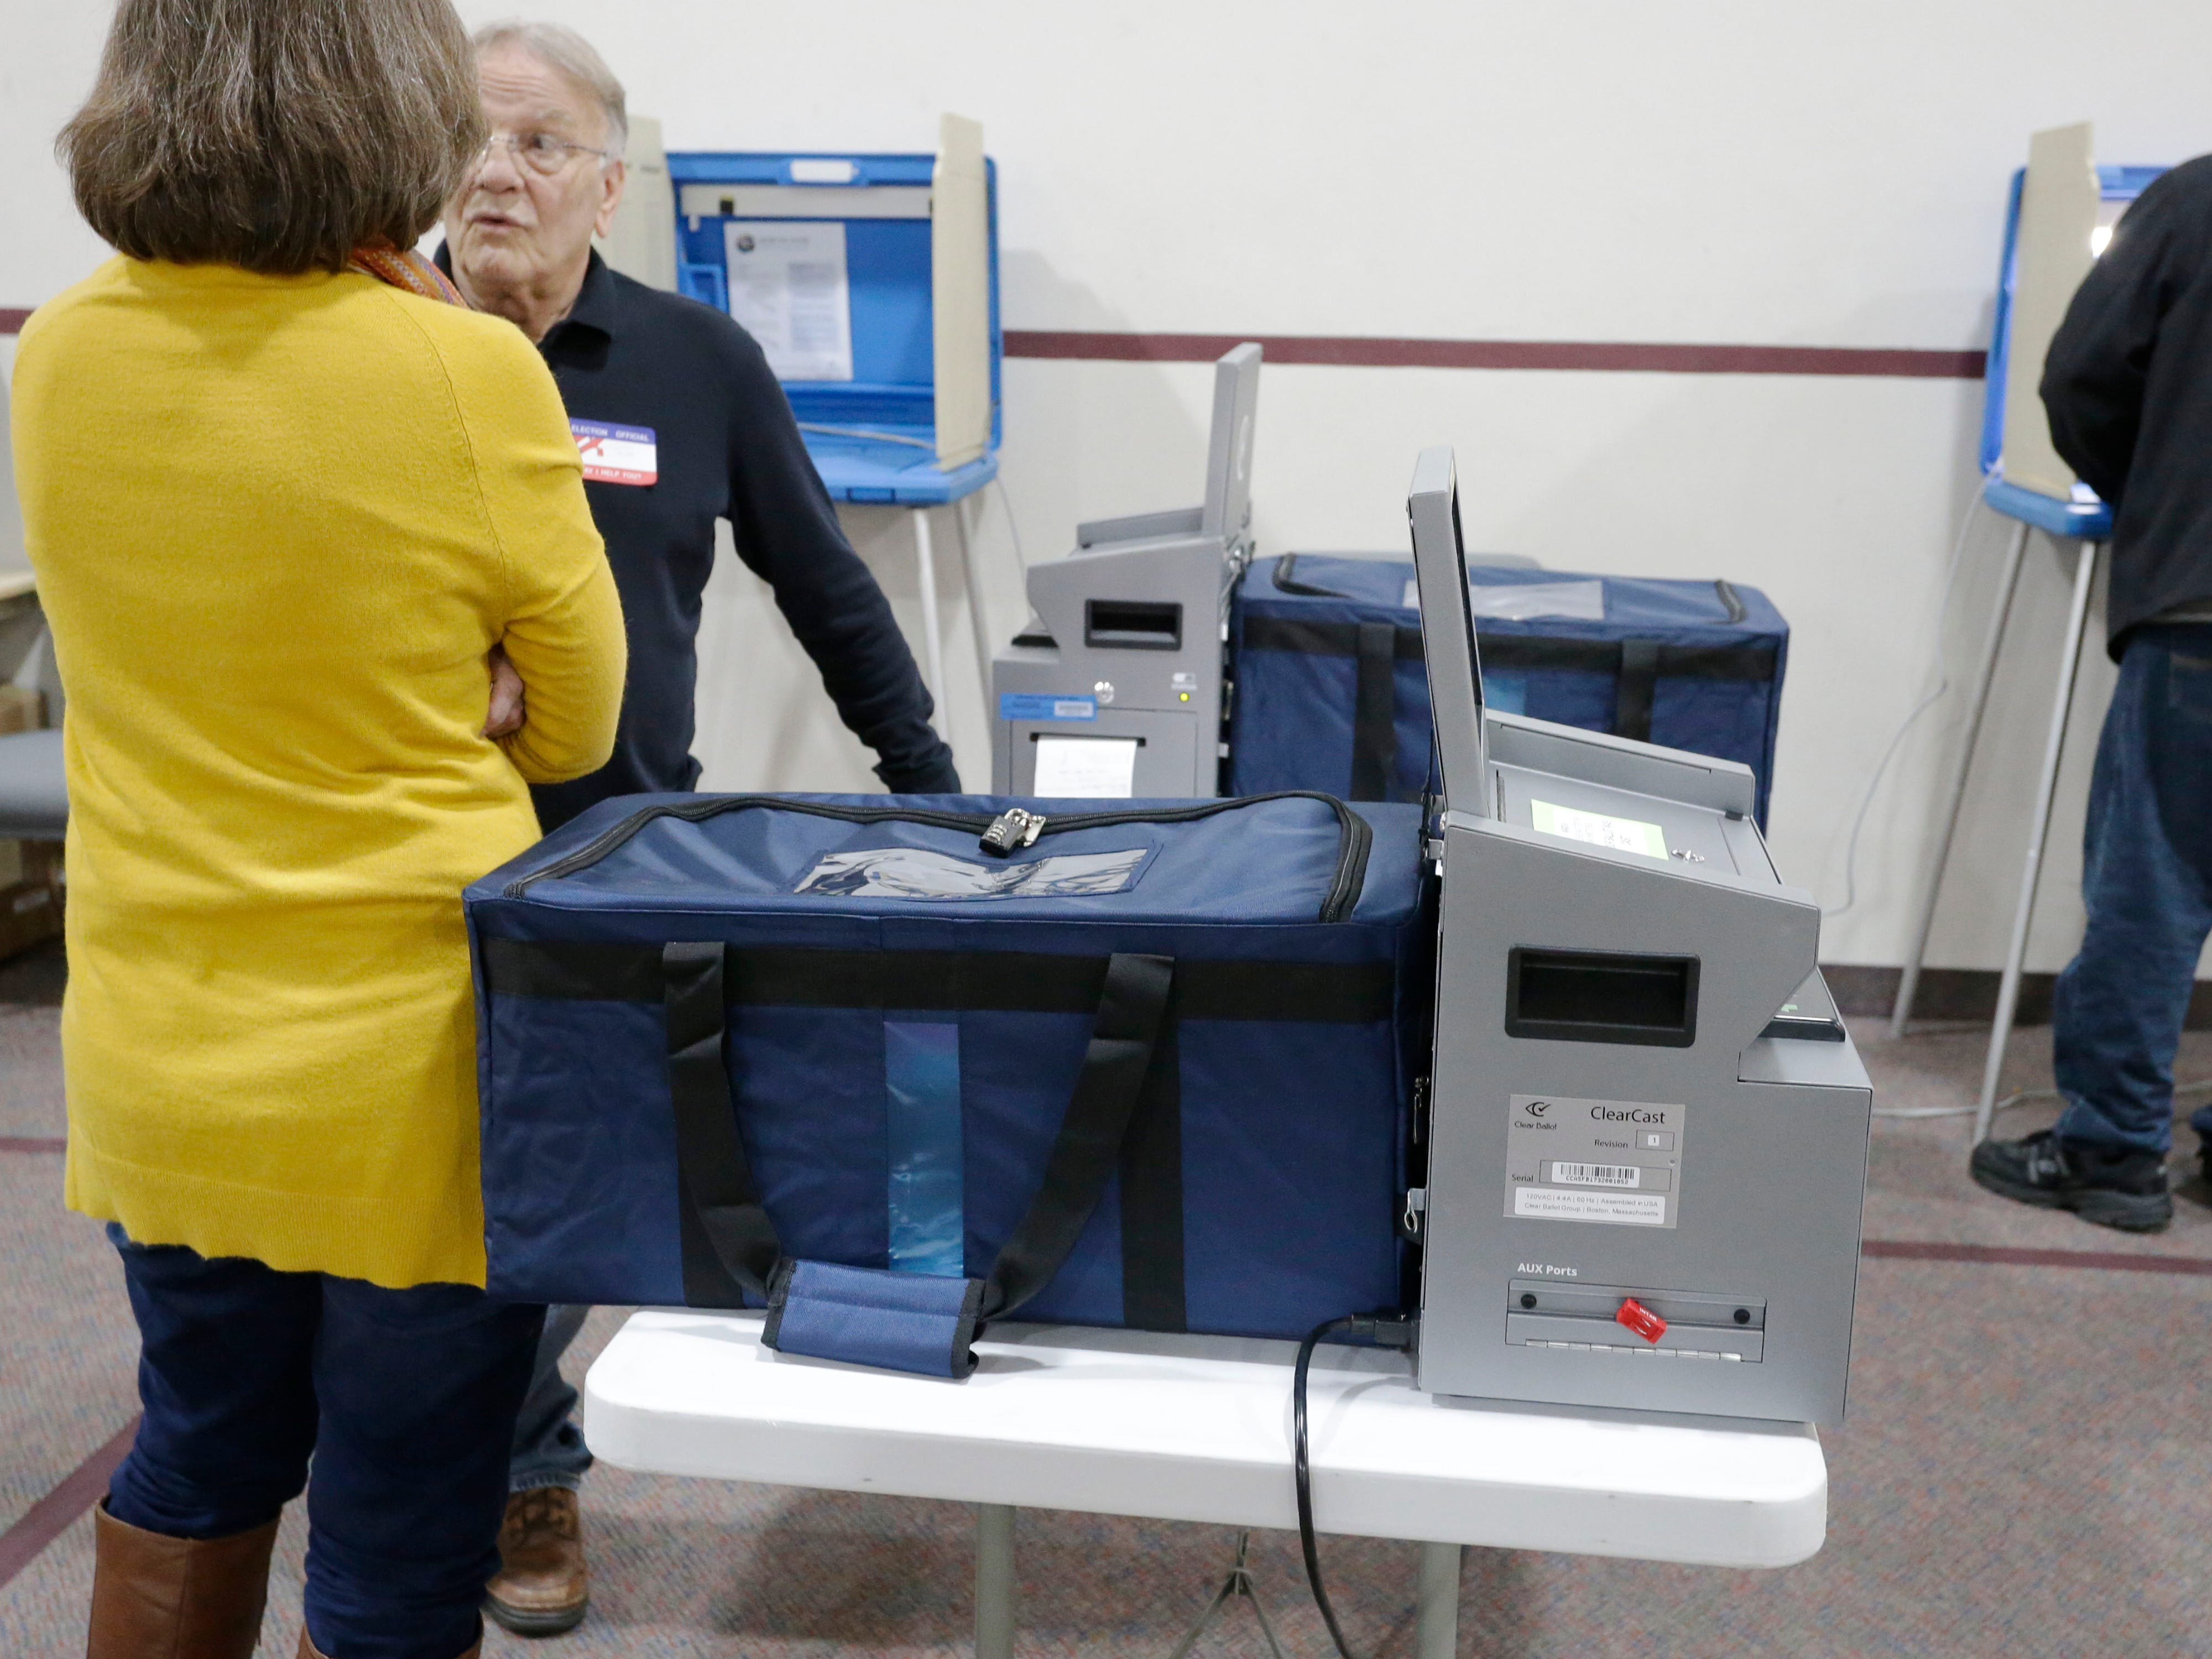 Poll workers stand near one of the new Sheboygan County-wide voting tabulators as seen at Evangelical Free Church polls, Tuesday, November 6, 2018, in Sheboygan, Wis.